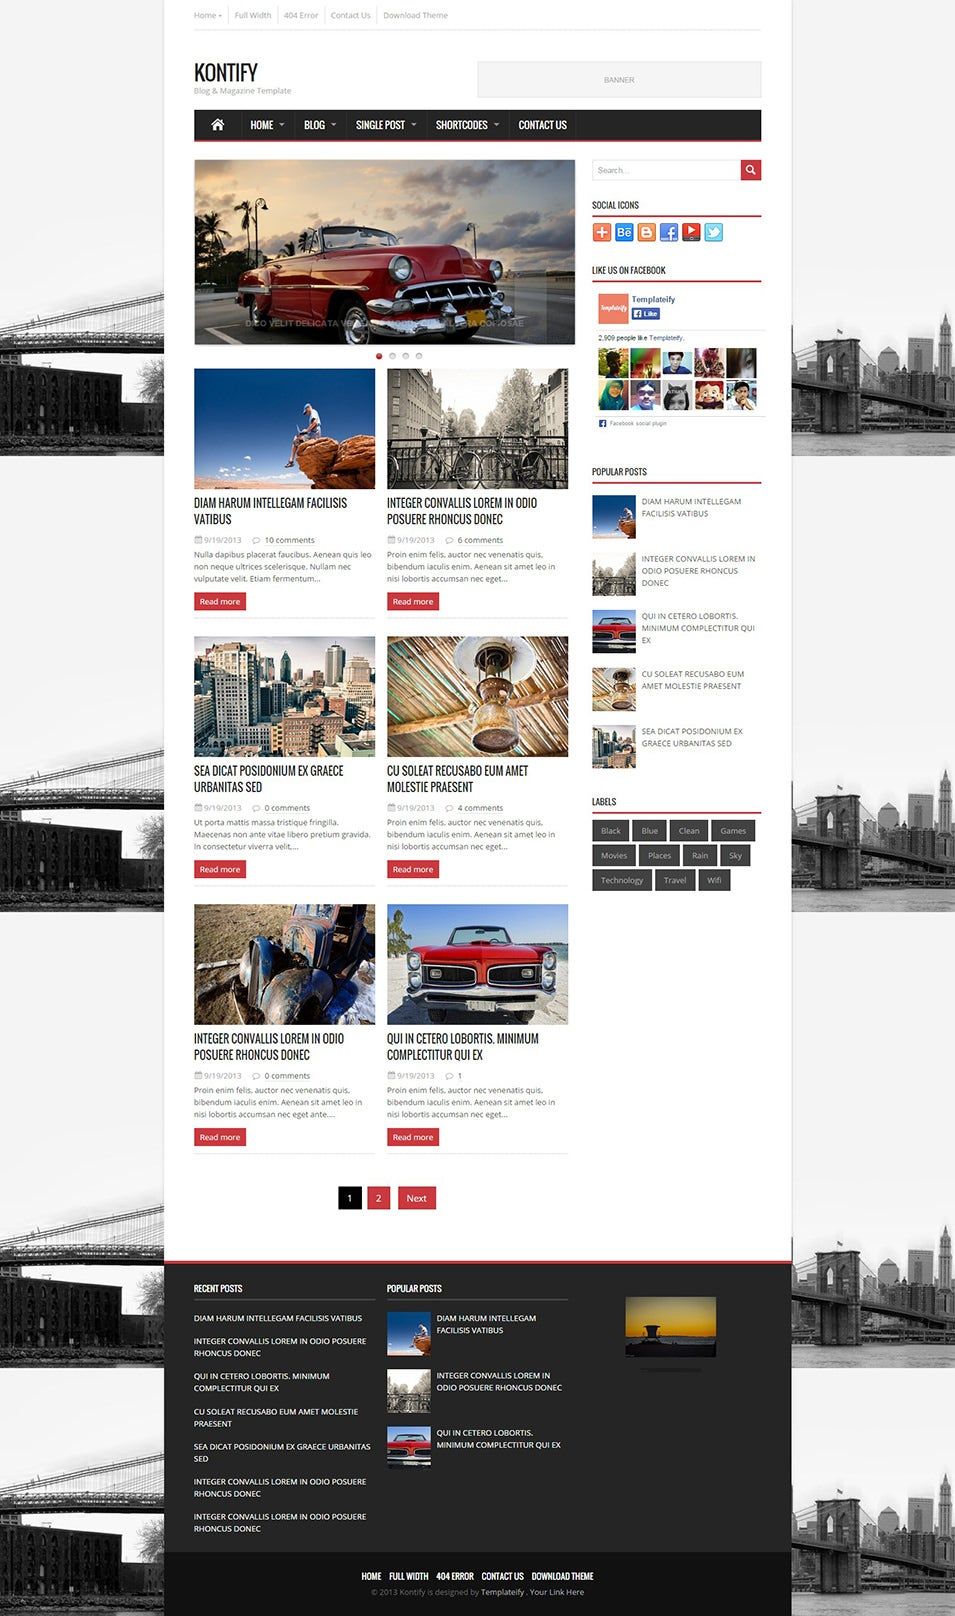 Top Magazine Journal Blog Template - 12+ Free Sample, Example Format ...